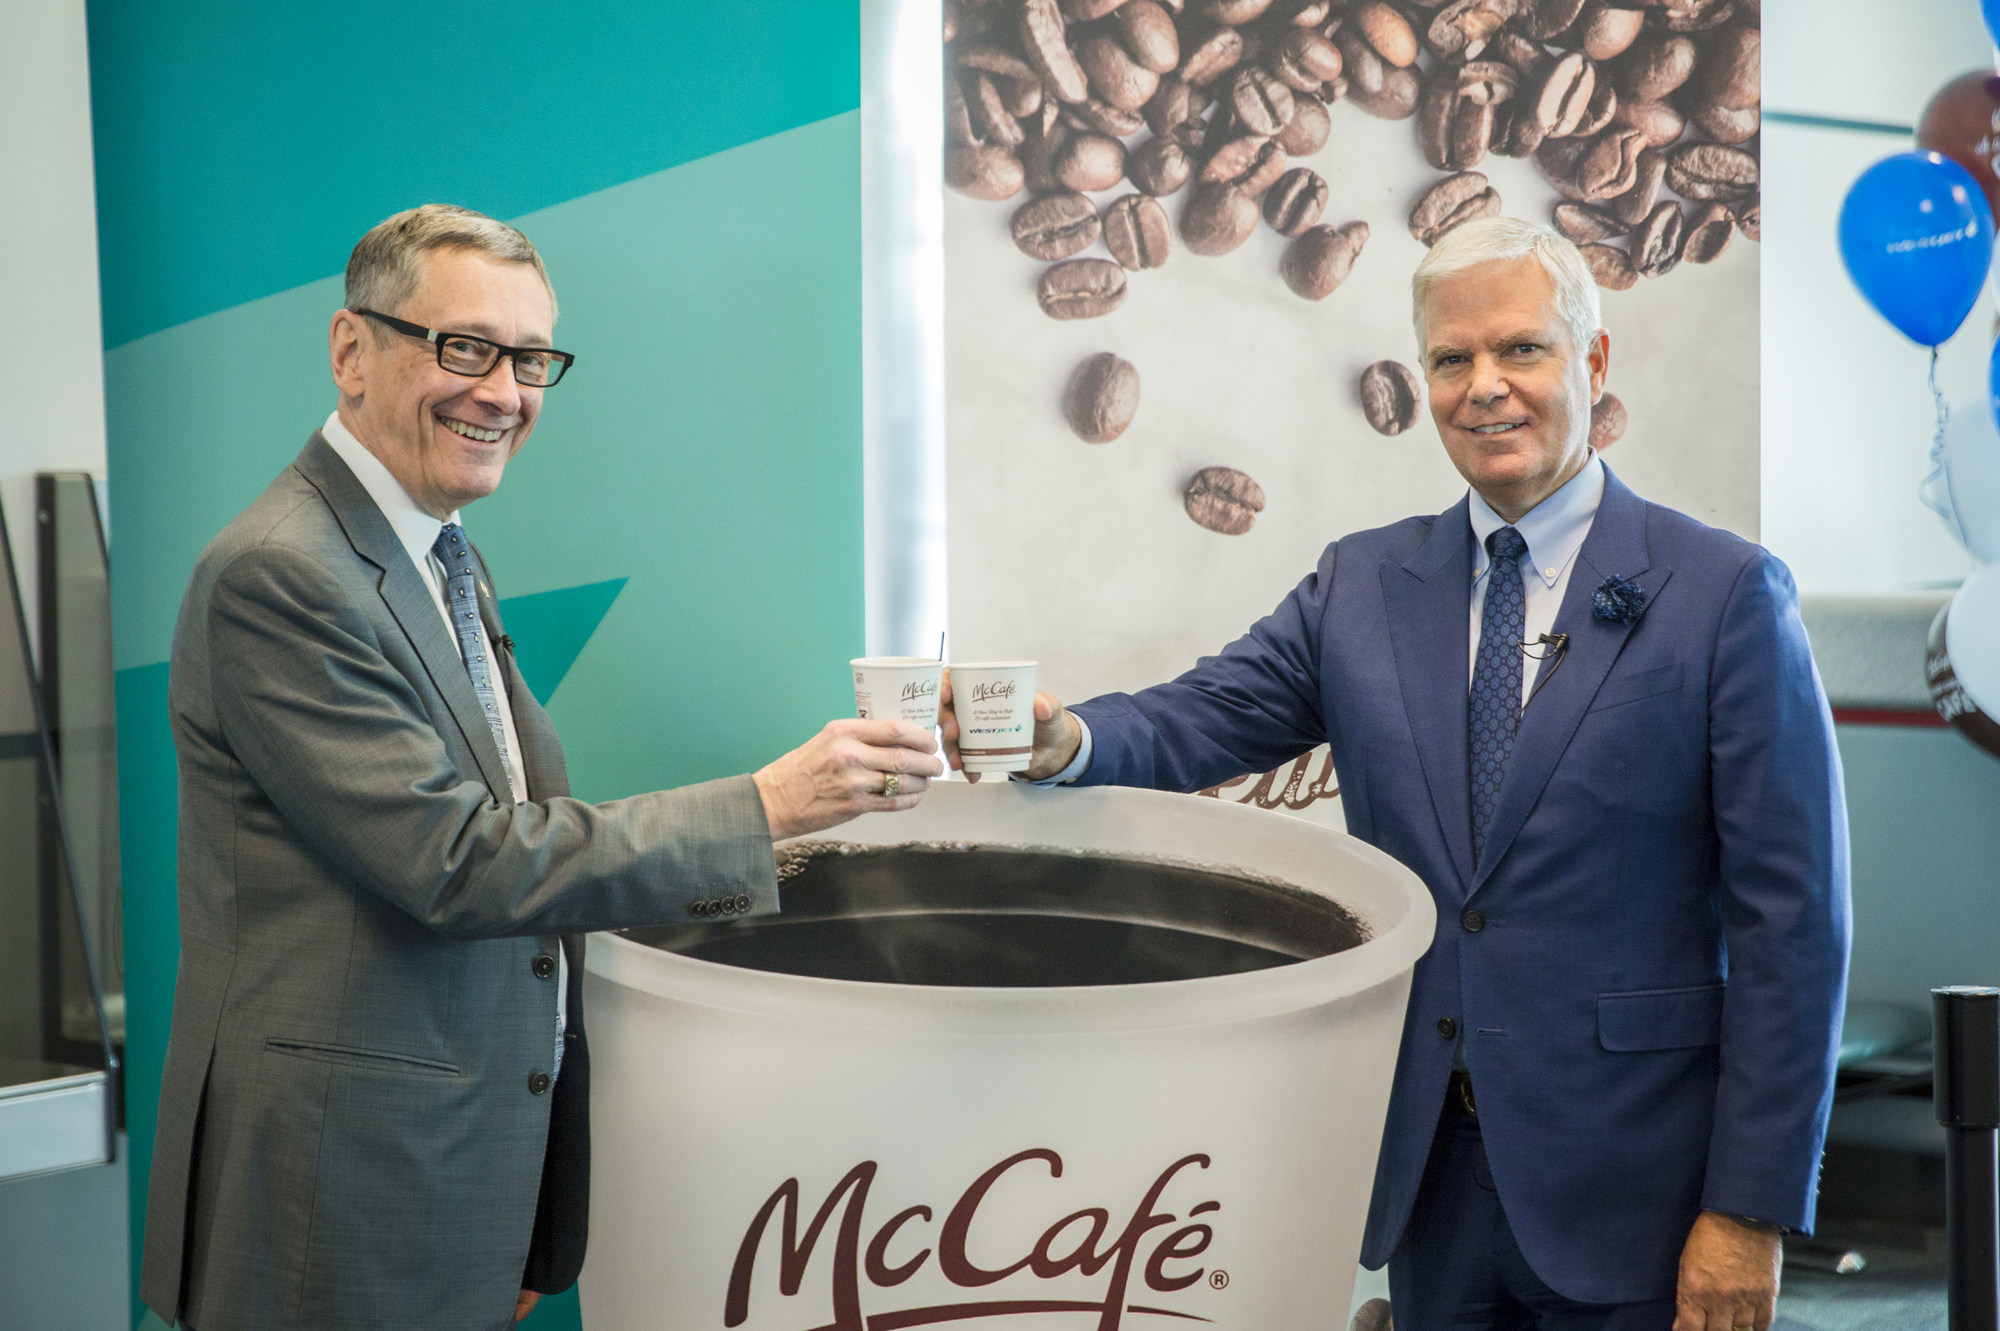 Gregg Saretsky, WestJet President and CEO, and John Betts, McDonald's Canada, President and CEO, toast to honour the inaugural flight of McCafé Premium Roast coffee being served on WestJet flights. Both executives were on hand to greet guests at the gate Monday, November 21. (CNW Group/WestJet)